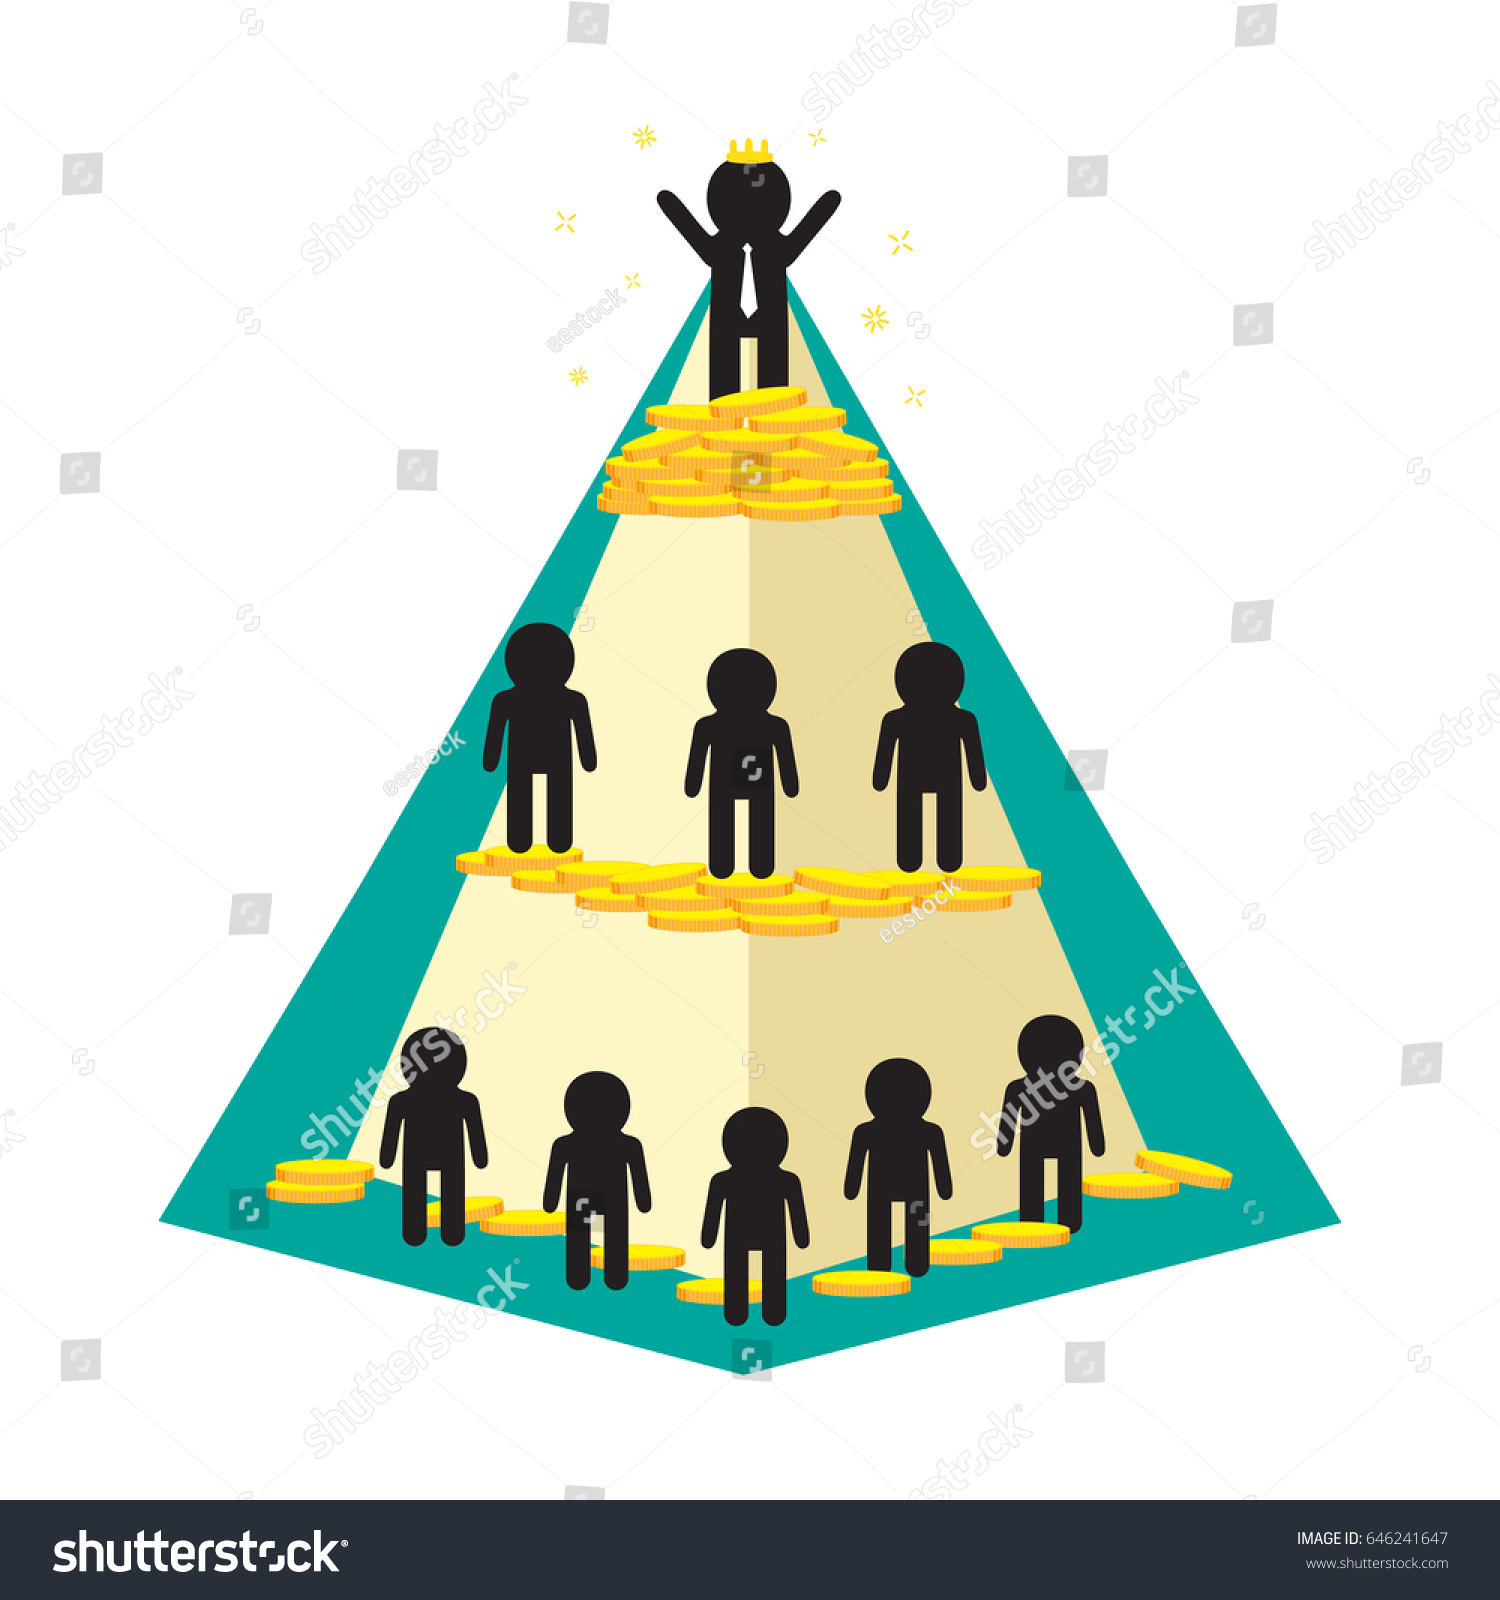 pyramid compare between rich poor people stock vector royalty free